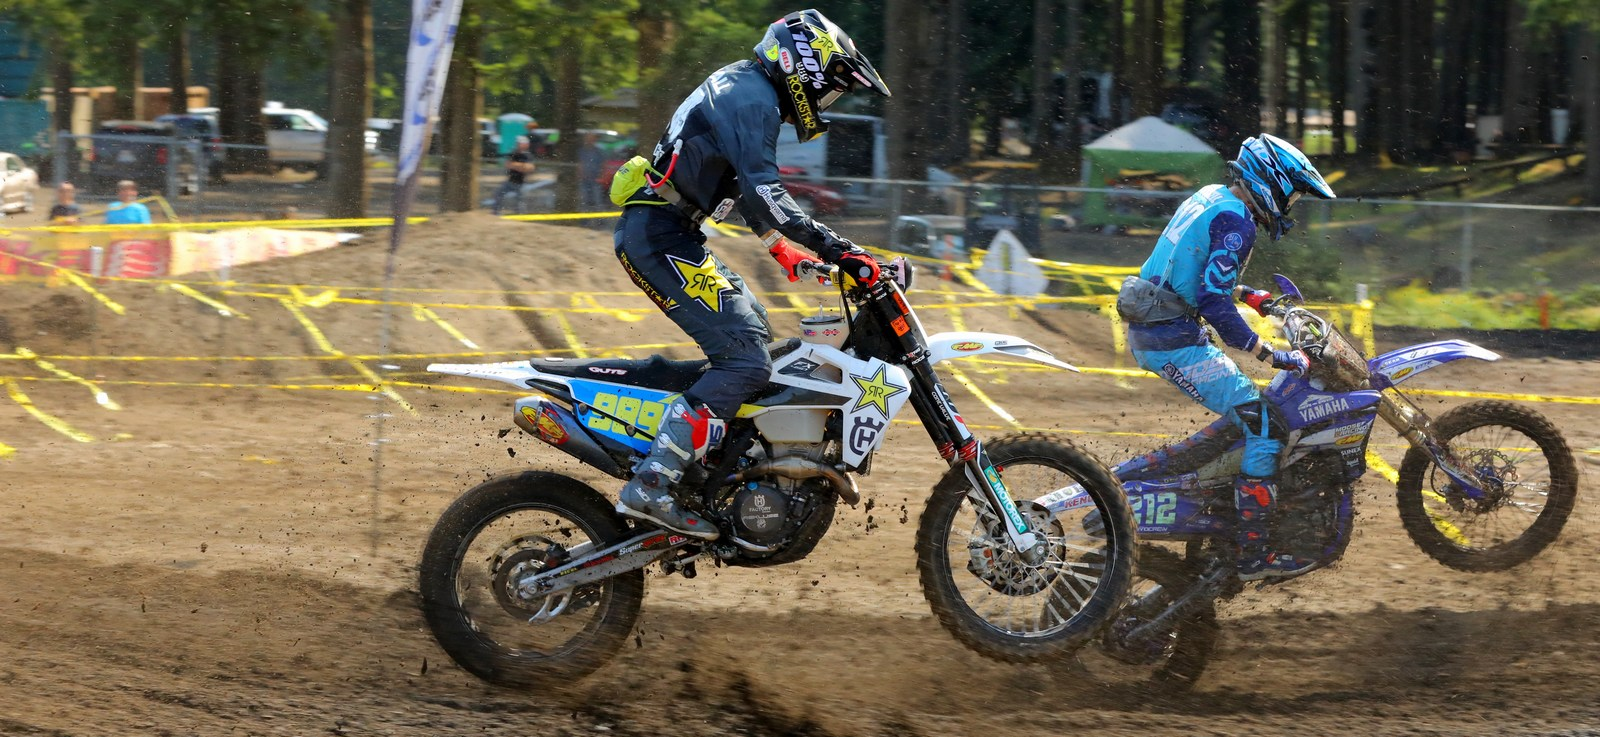 2019-08-thad-duvall-ricky-russell-bike-worcs-racing